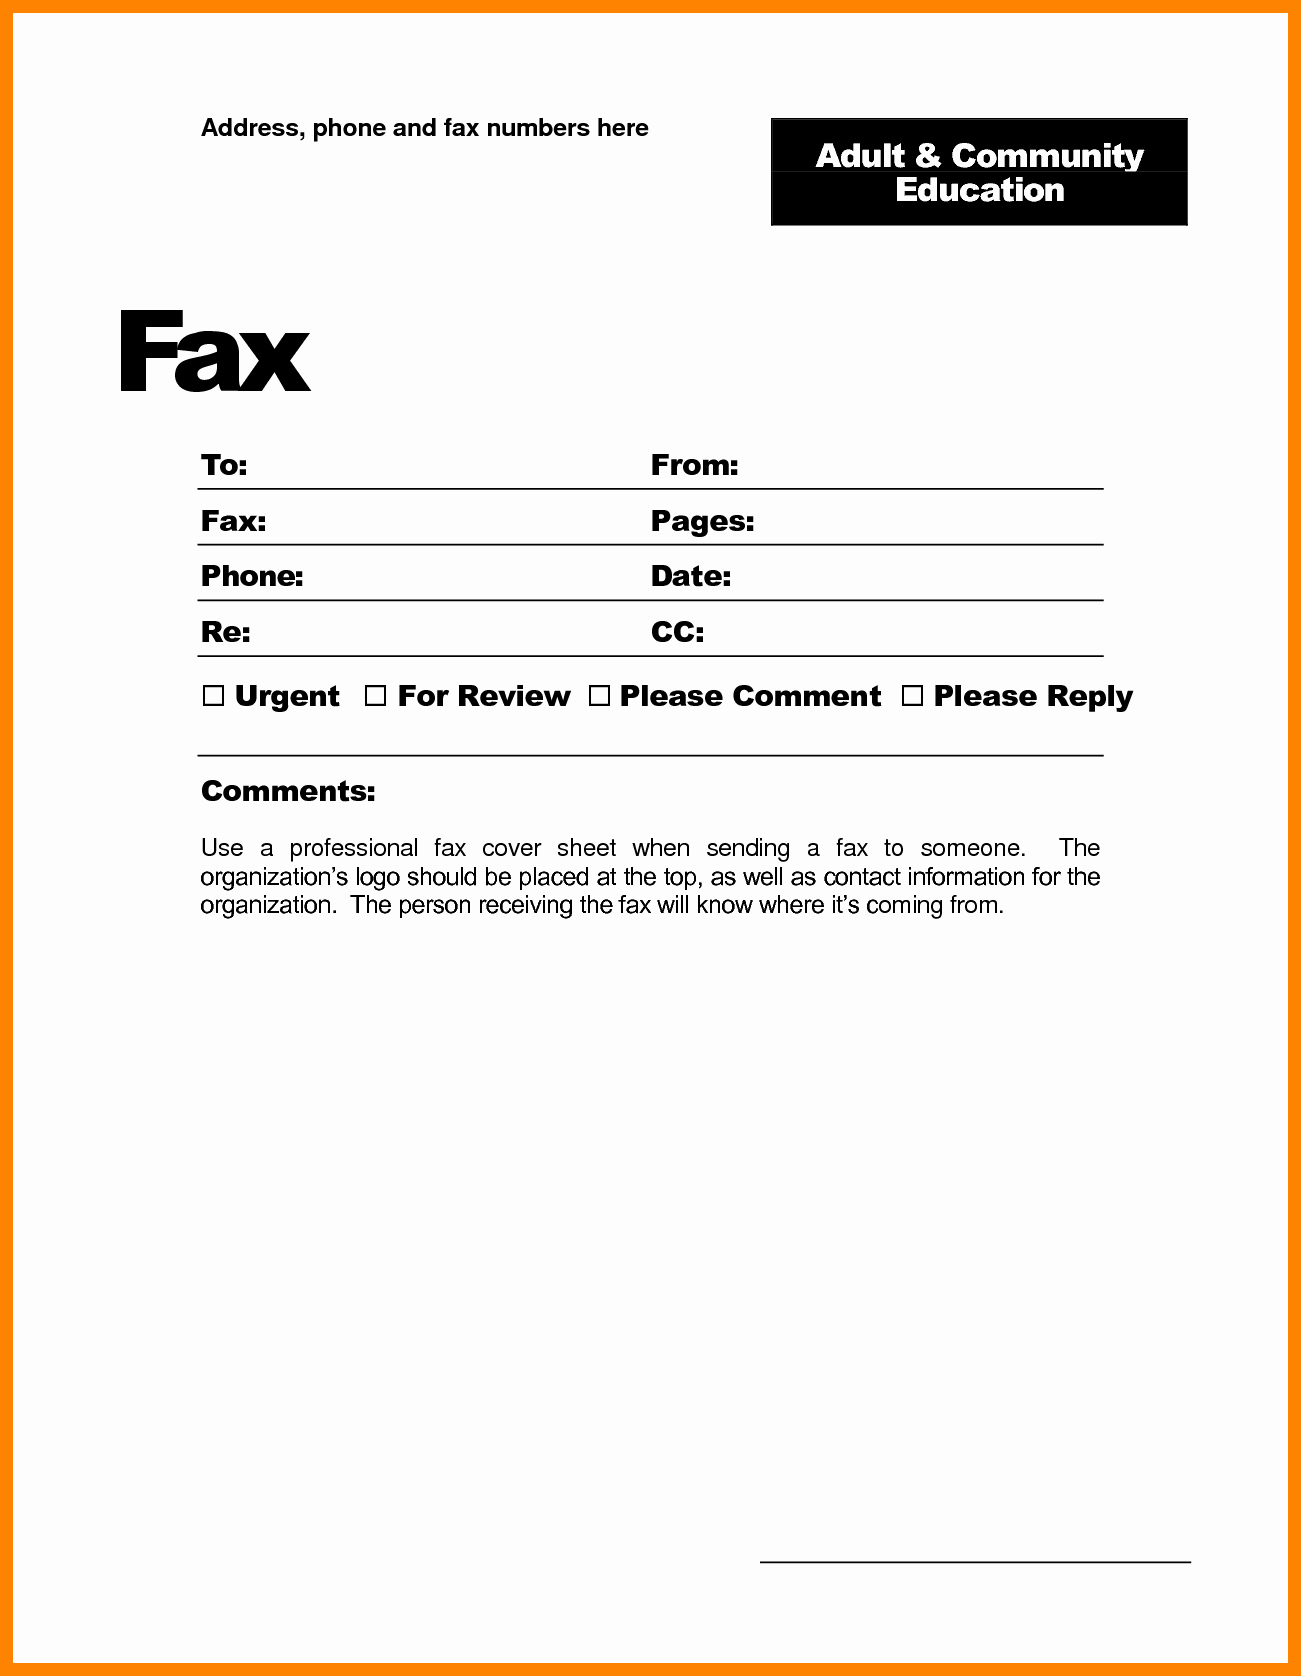 Word Template Fax Cover Sheet Best Of Fax Cover Template Word Portablegasgrillweber